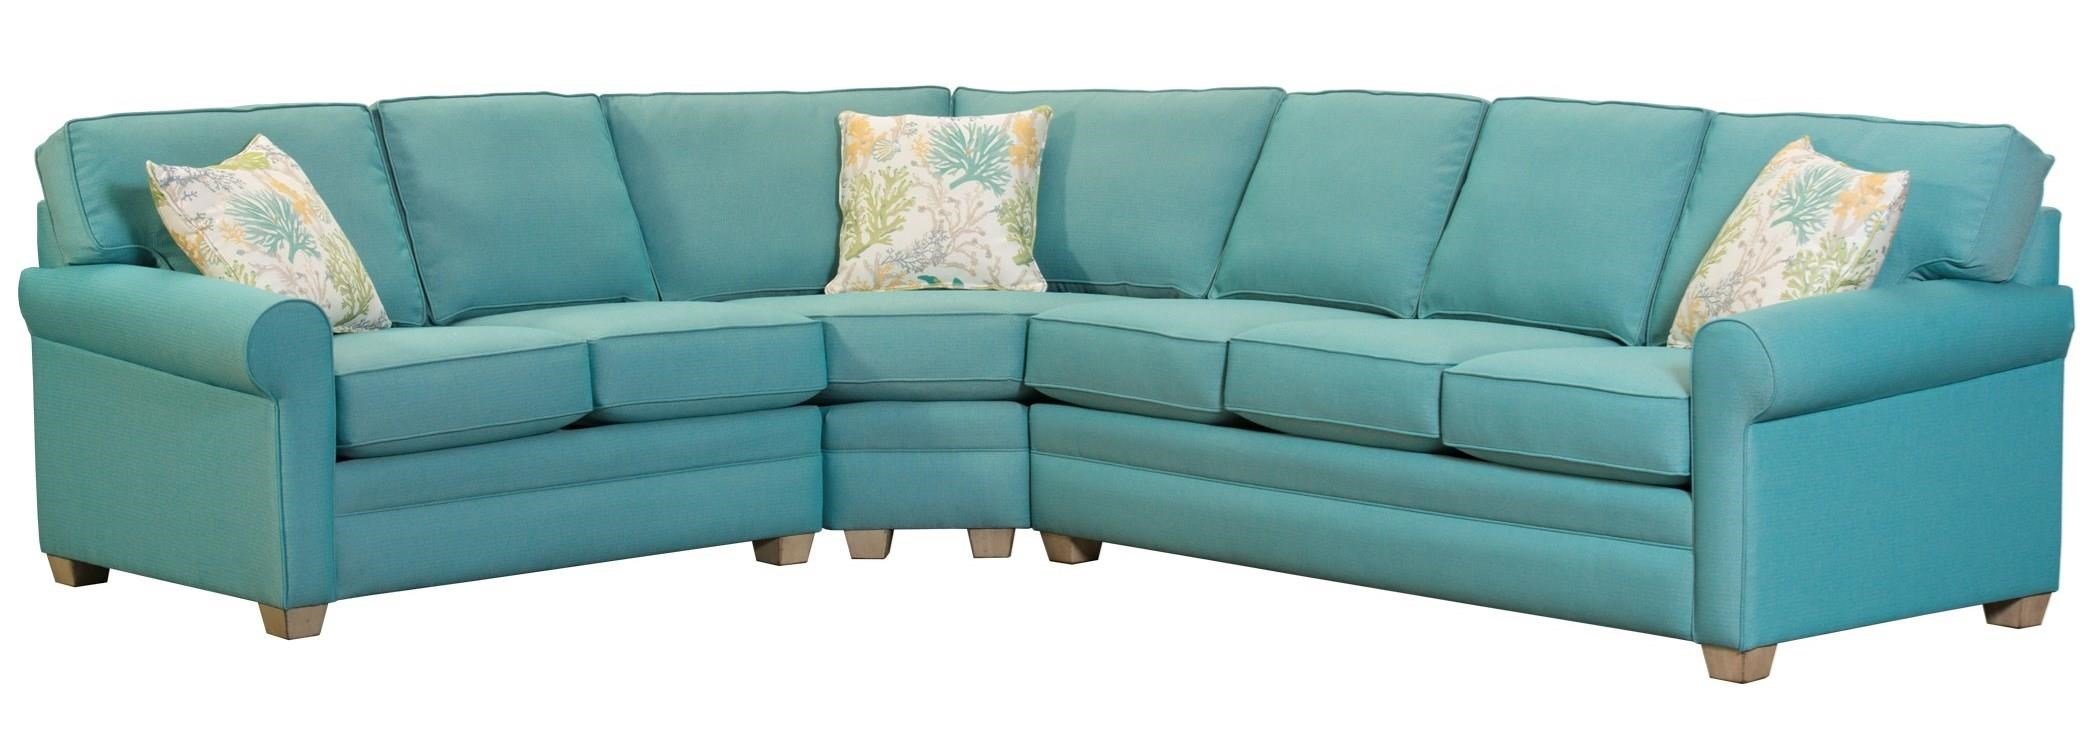 402 3 Pc Sectional Sofa by Capris Furniture at Esprit Decor Home Furnishings